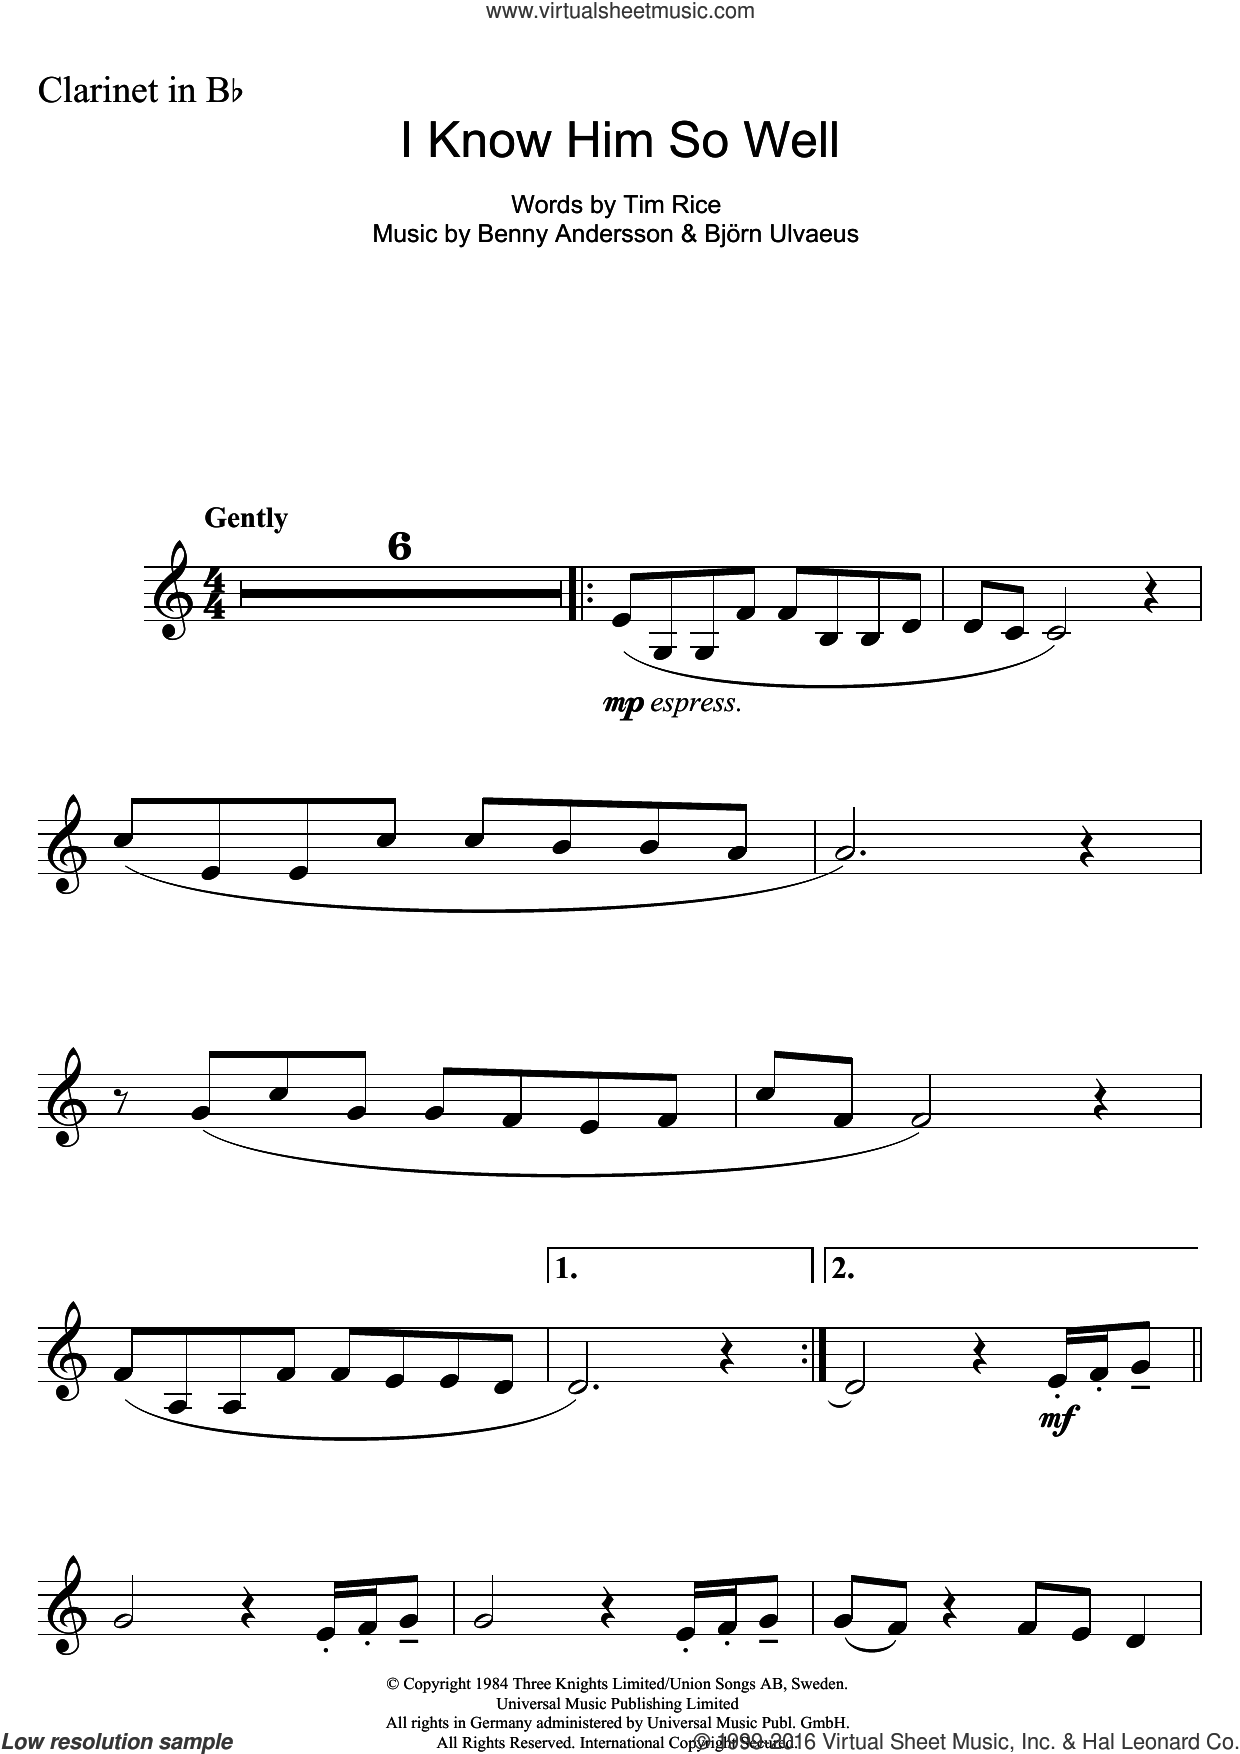 I Know Him So Well (from Chess) sheet music for clarinet solo by Tim Rice, Benny Andersson and Bjorn Ulvaeus, intermediate skill level